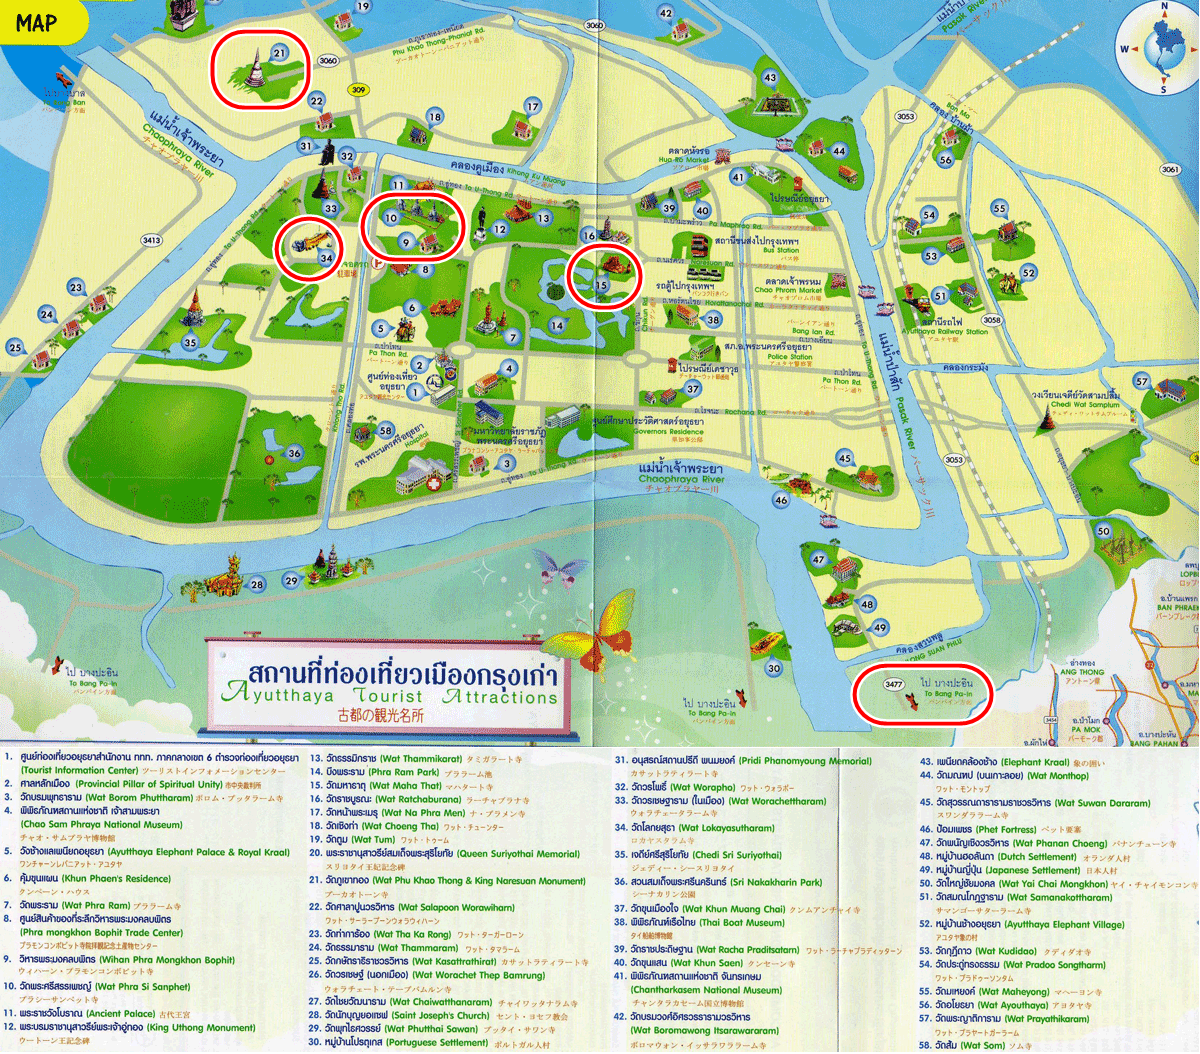 Download Ayutthaya Tourist Map Pdf free software studentbackup – Bangkok Tourist Map Pdf